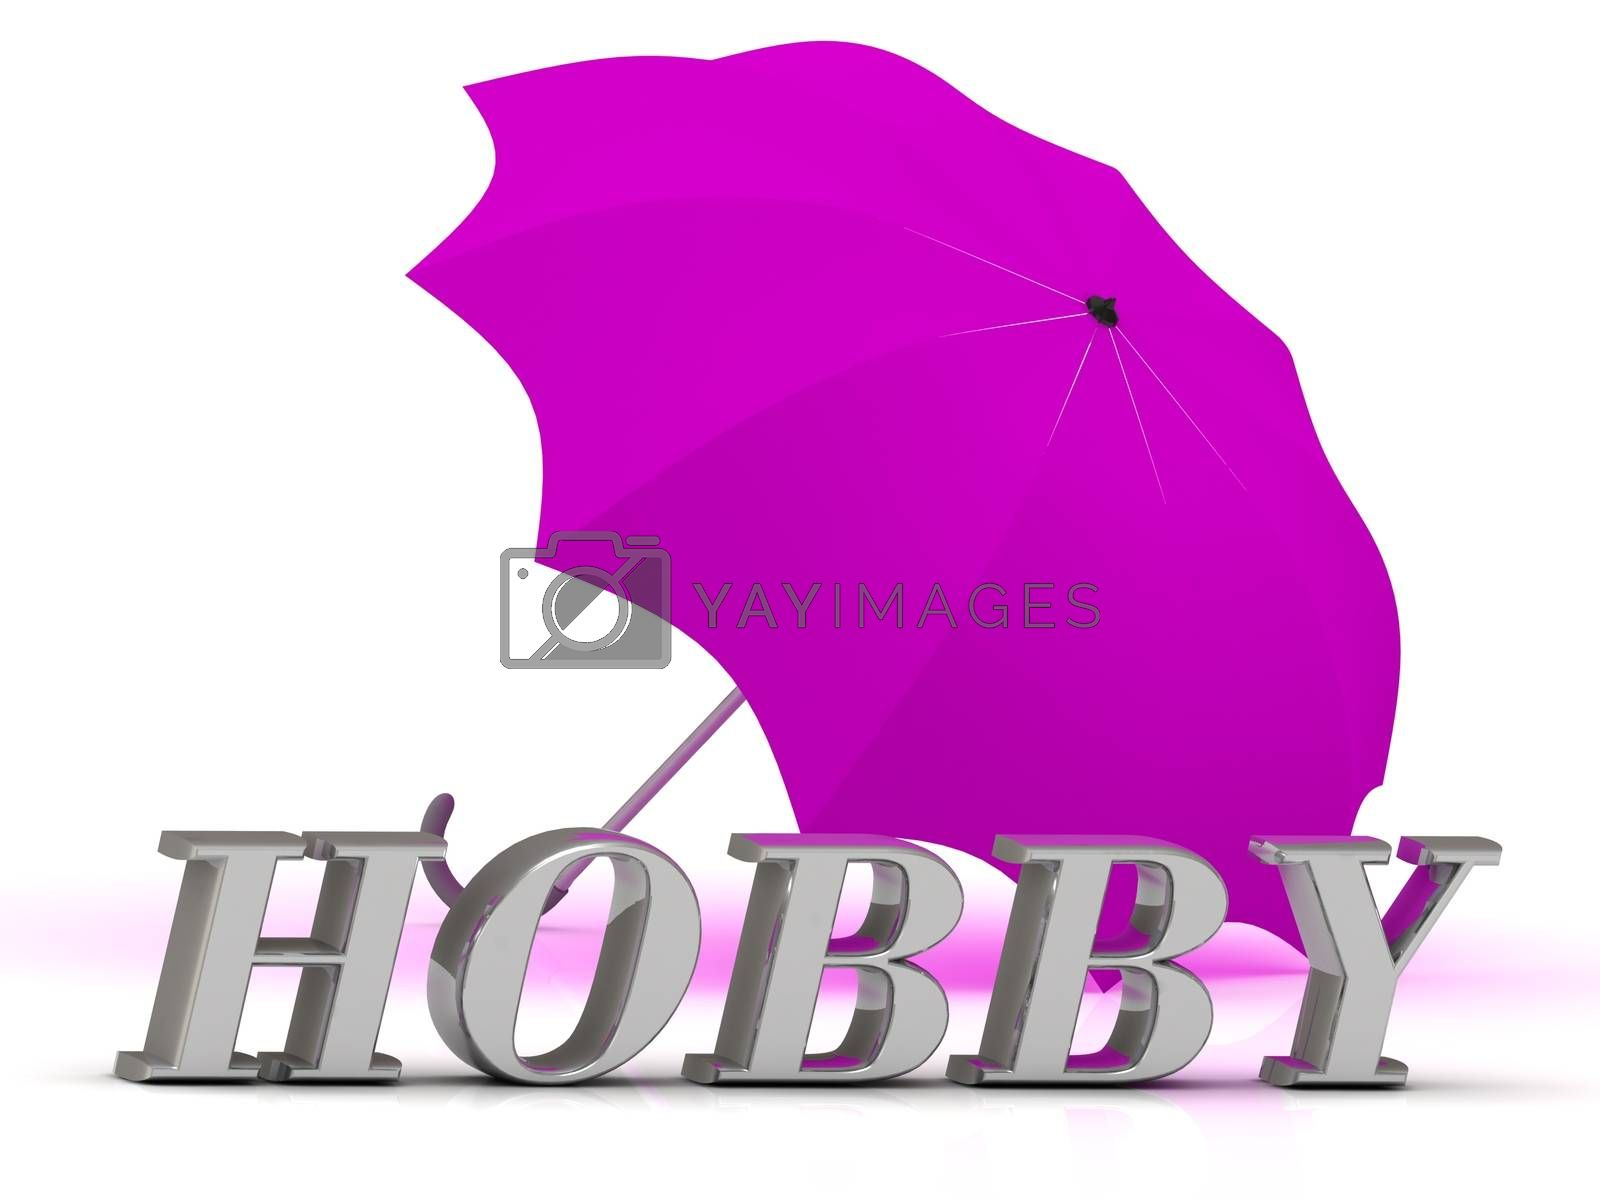 HOBBY- inscription of silver letters and umbrella on white background